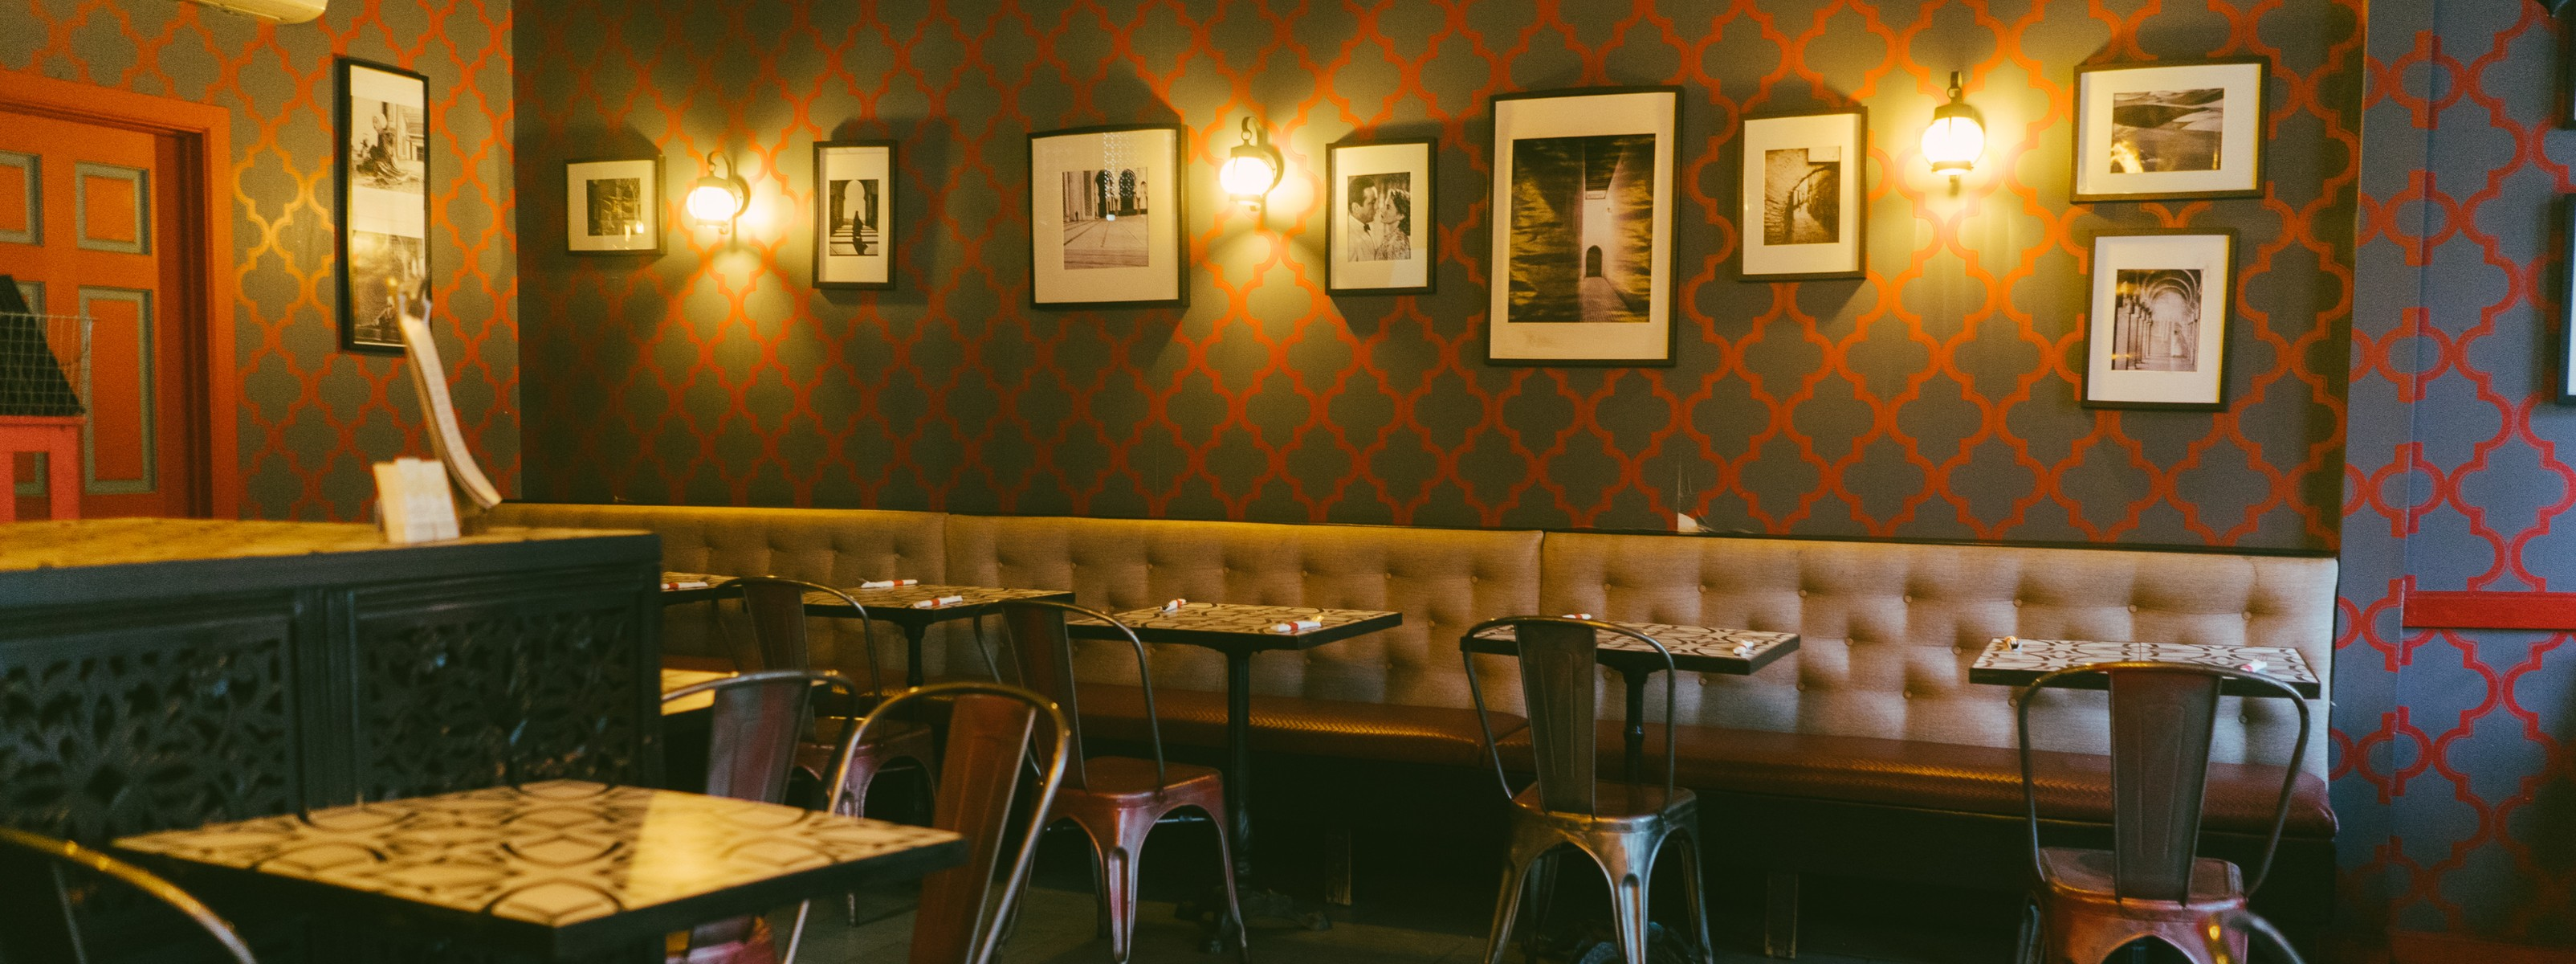 The Best Meals For Around $20 On The Upper East Side - Upper East Side - New York - The Infatuation